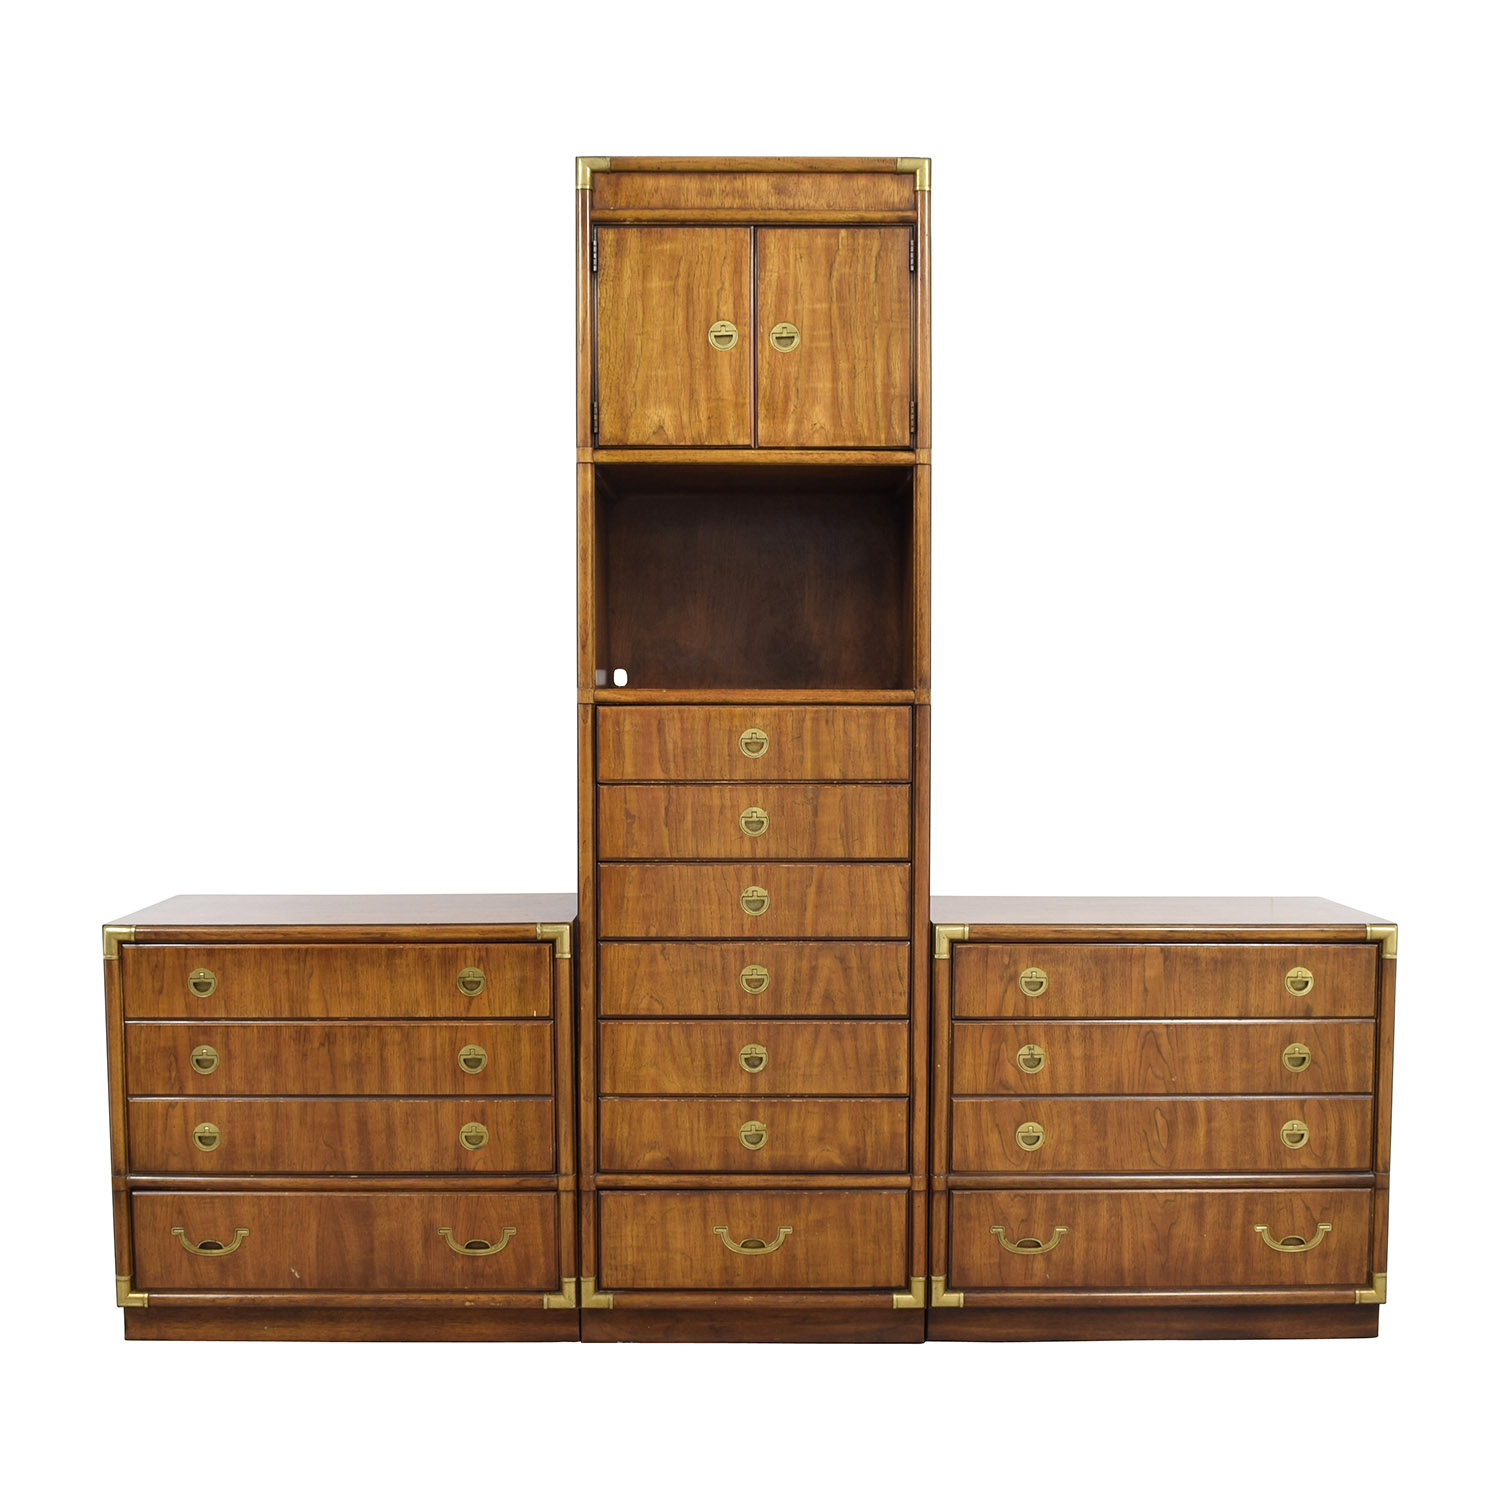 buy Drexel Drexel Three Piece Dresser Cabinet Set online